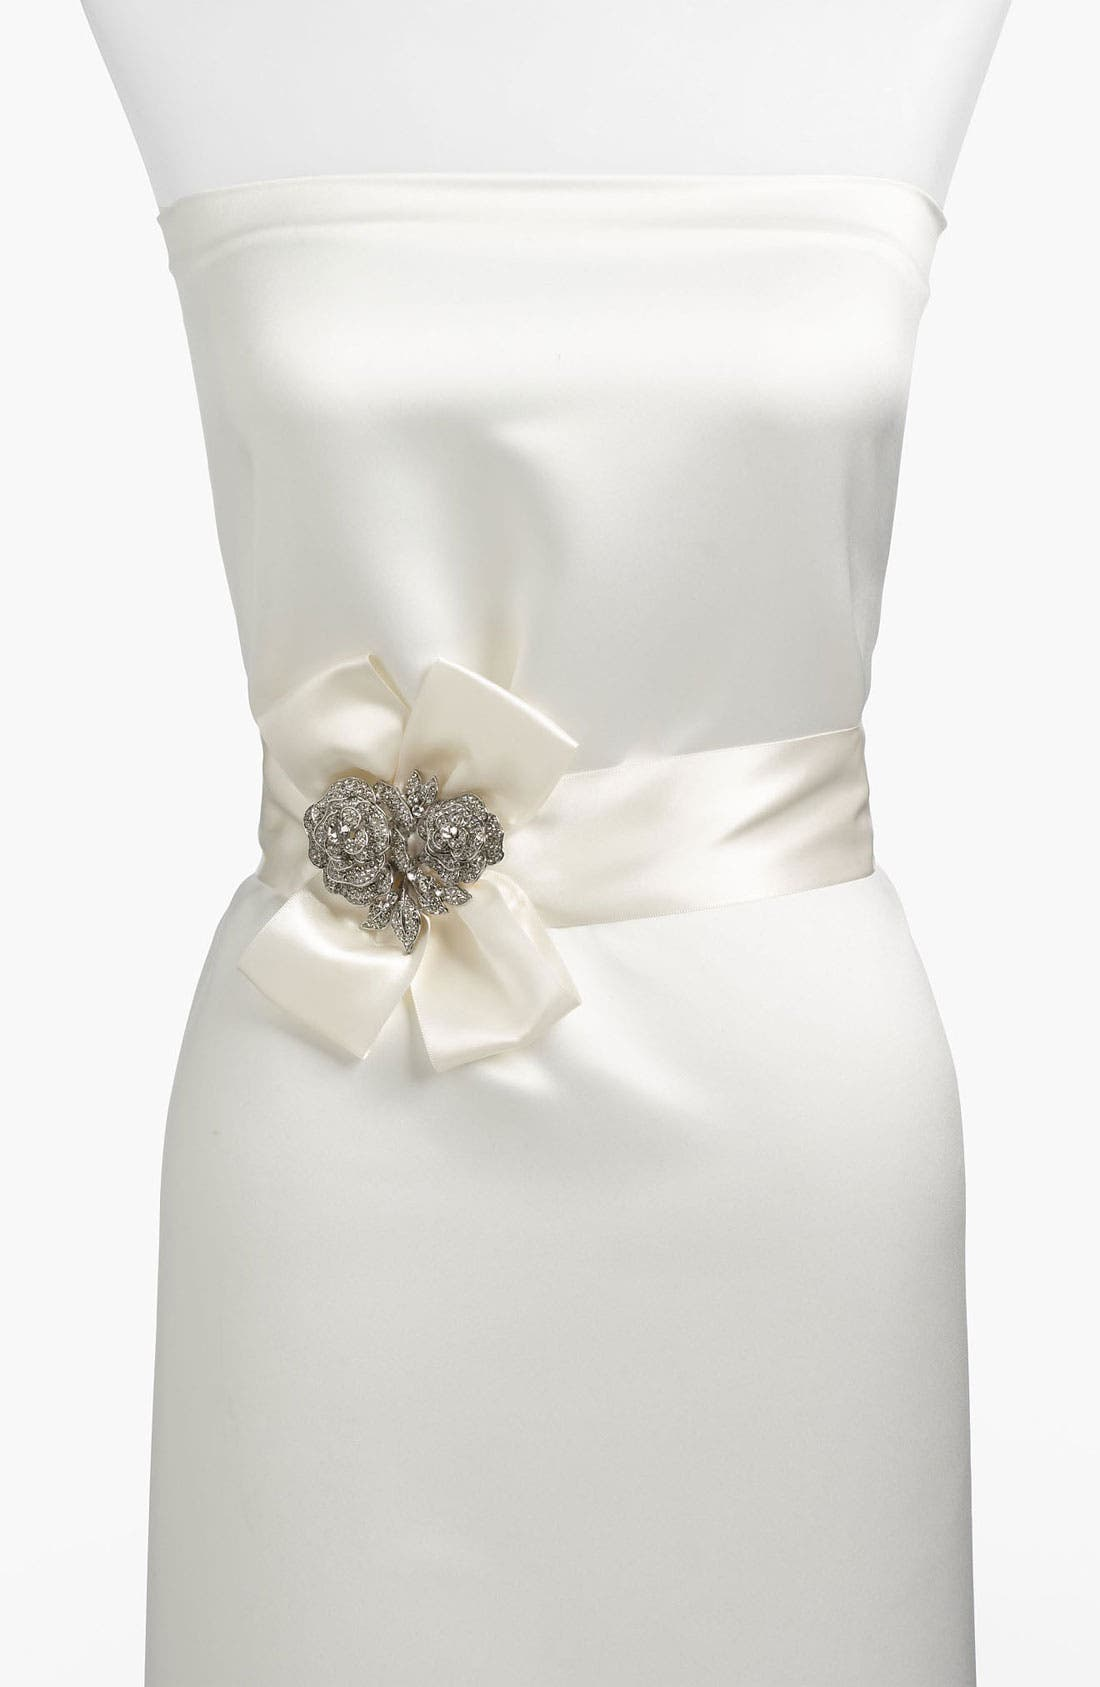 Alternate Image 1 Selected - Nina Satin Crystal Flower Sash